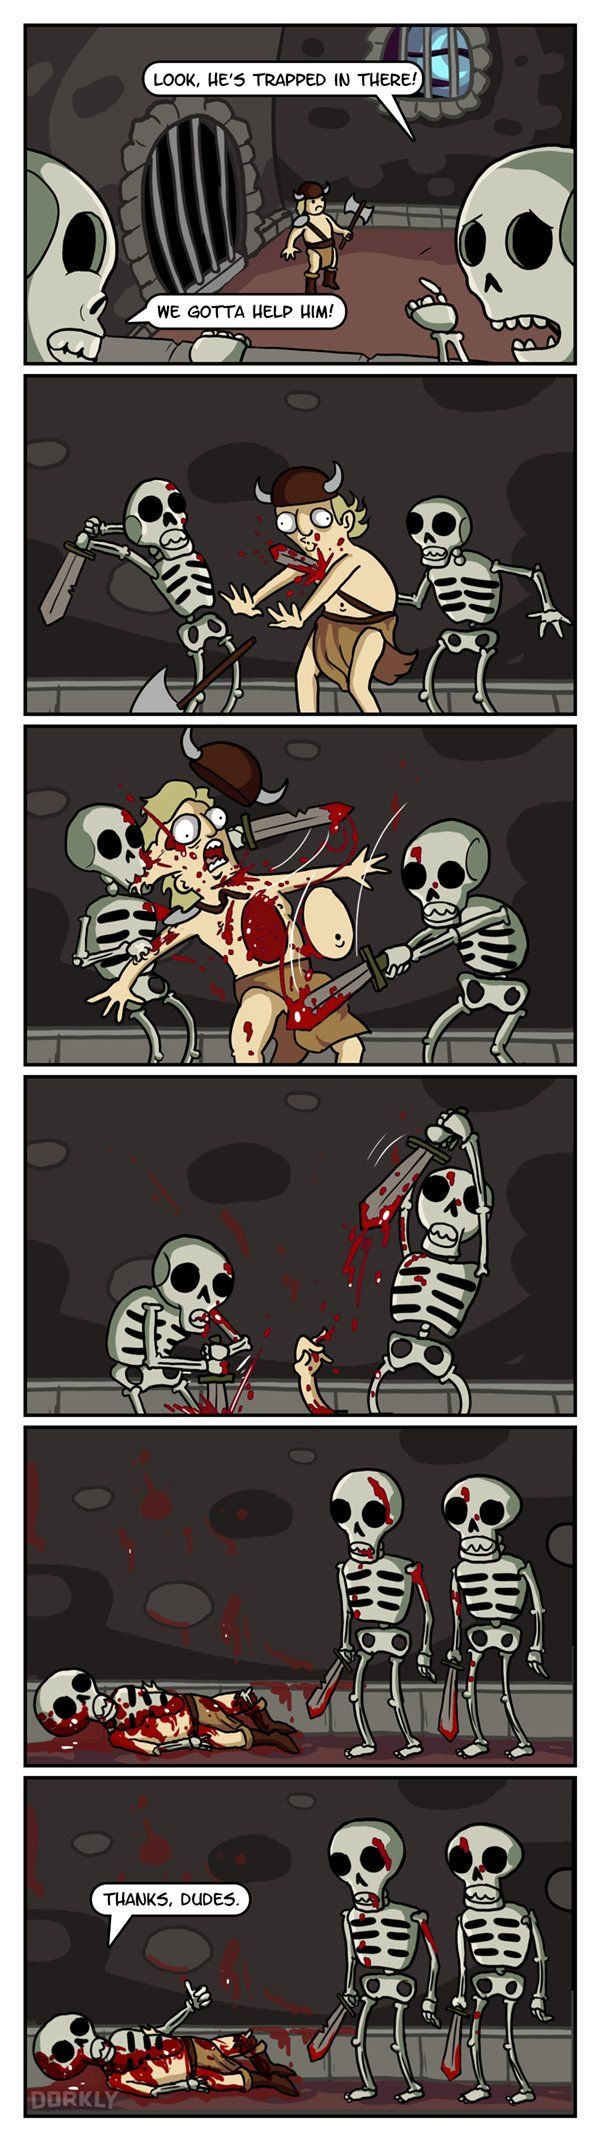 """Video Games from the Skeletons' Point of View"" #dorkly #geek #videogames"